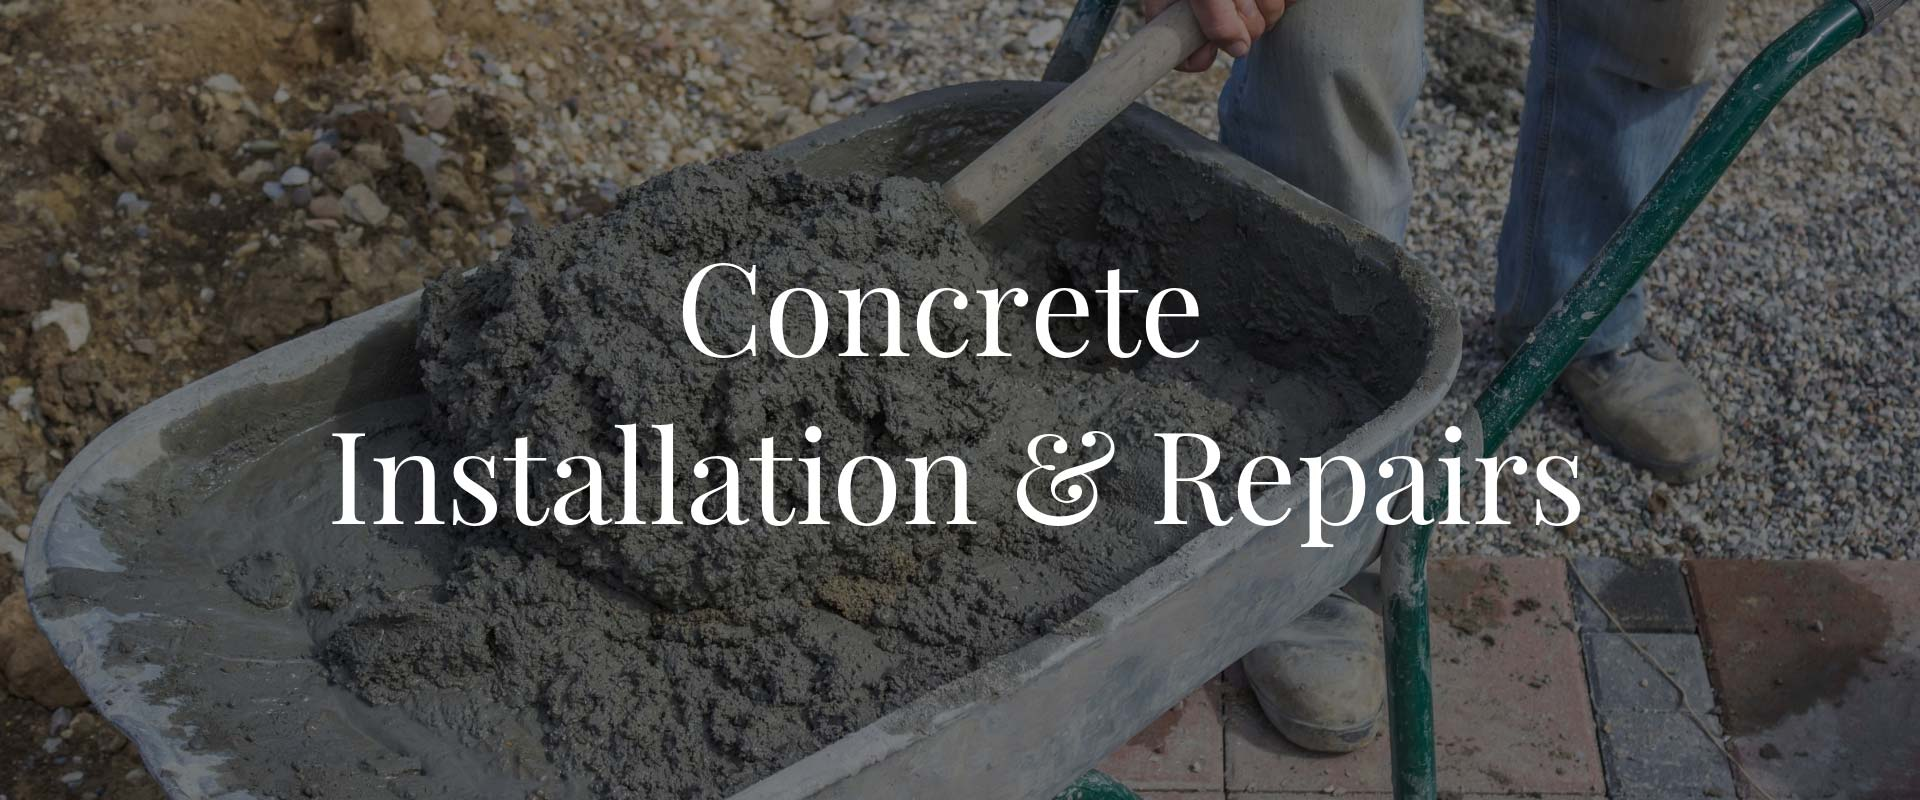 concrete installation and repairs